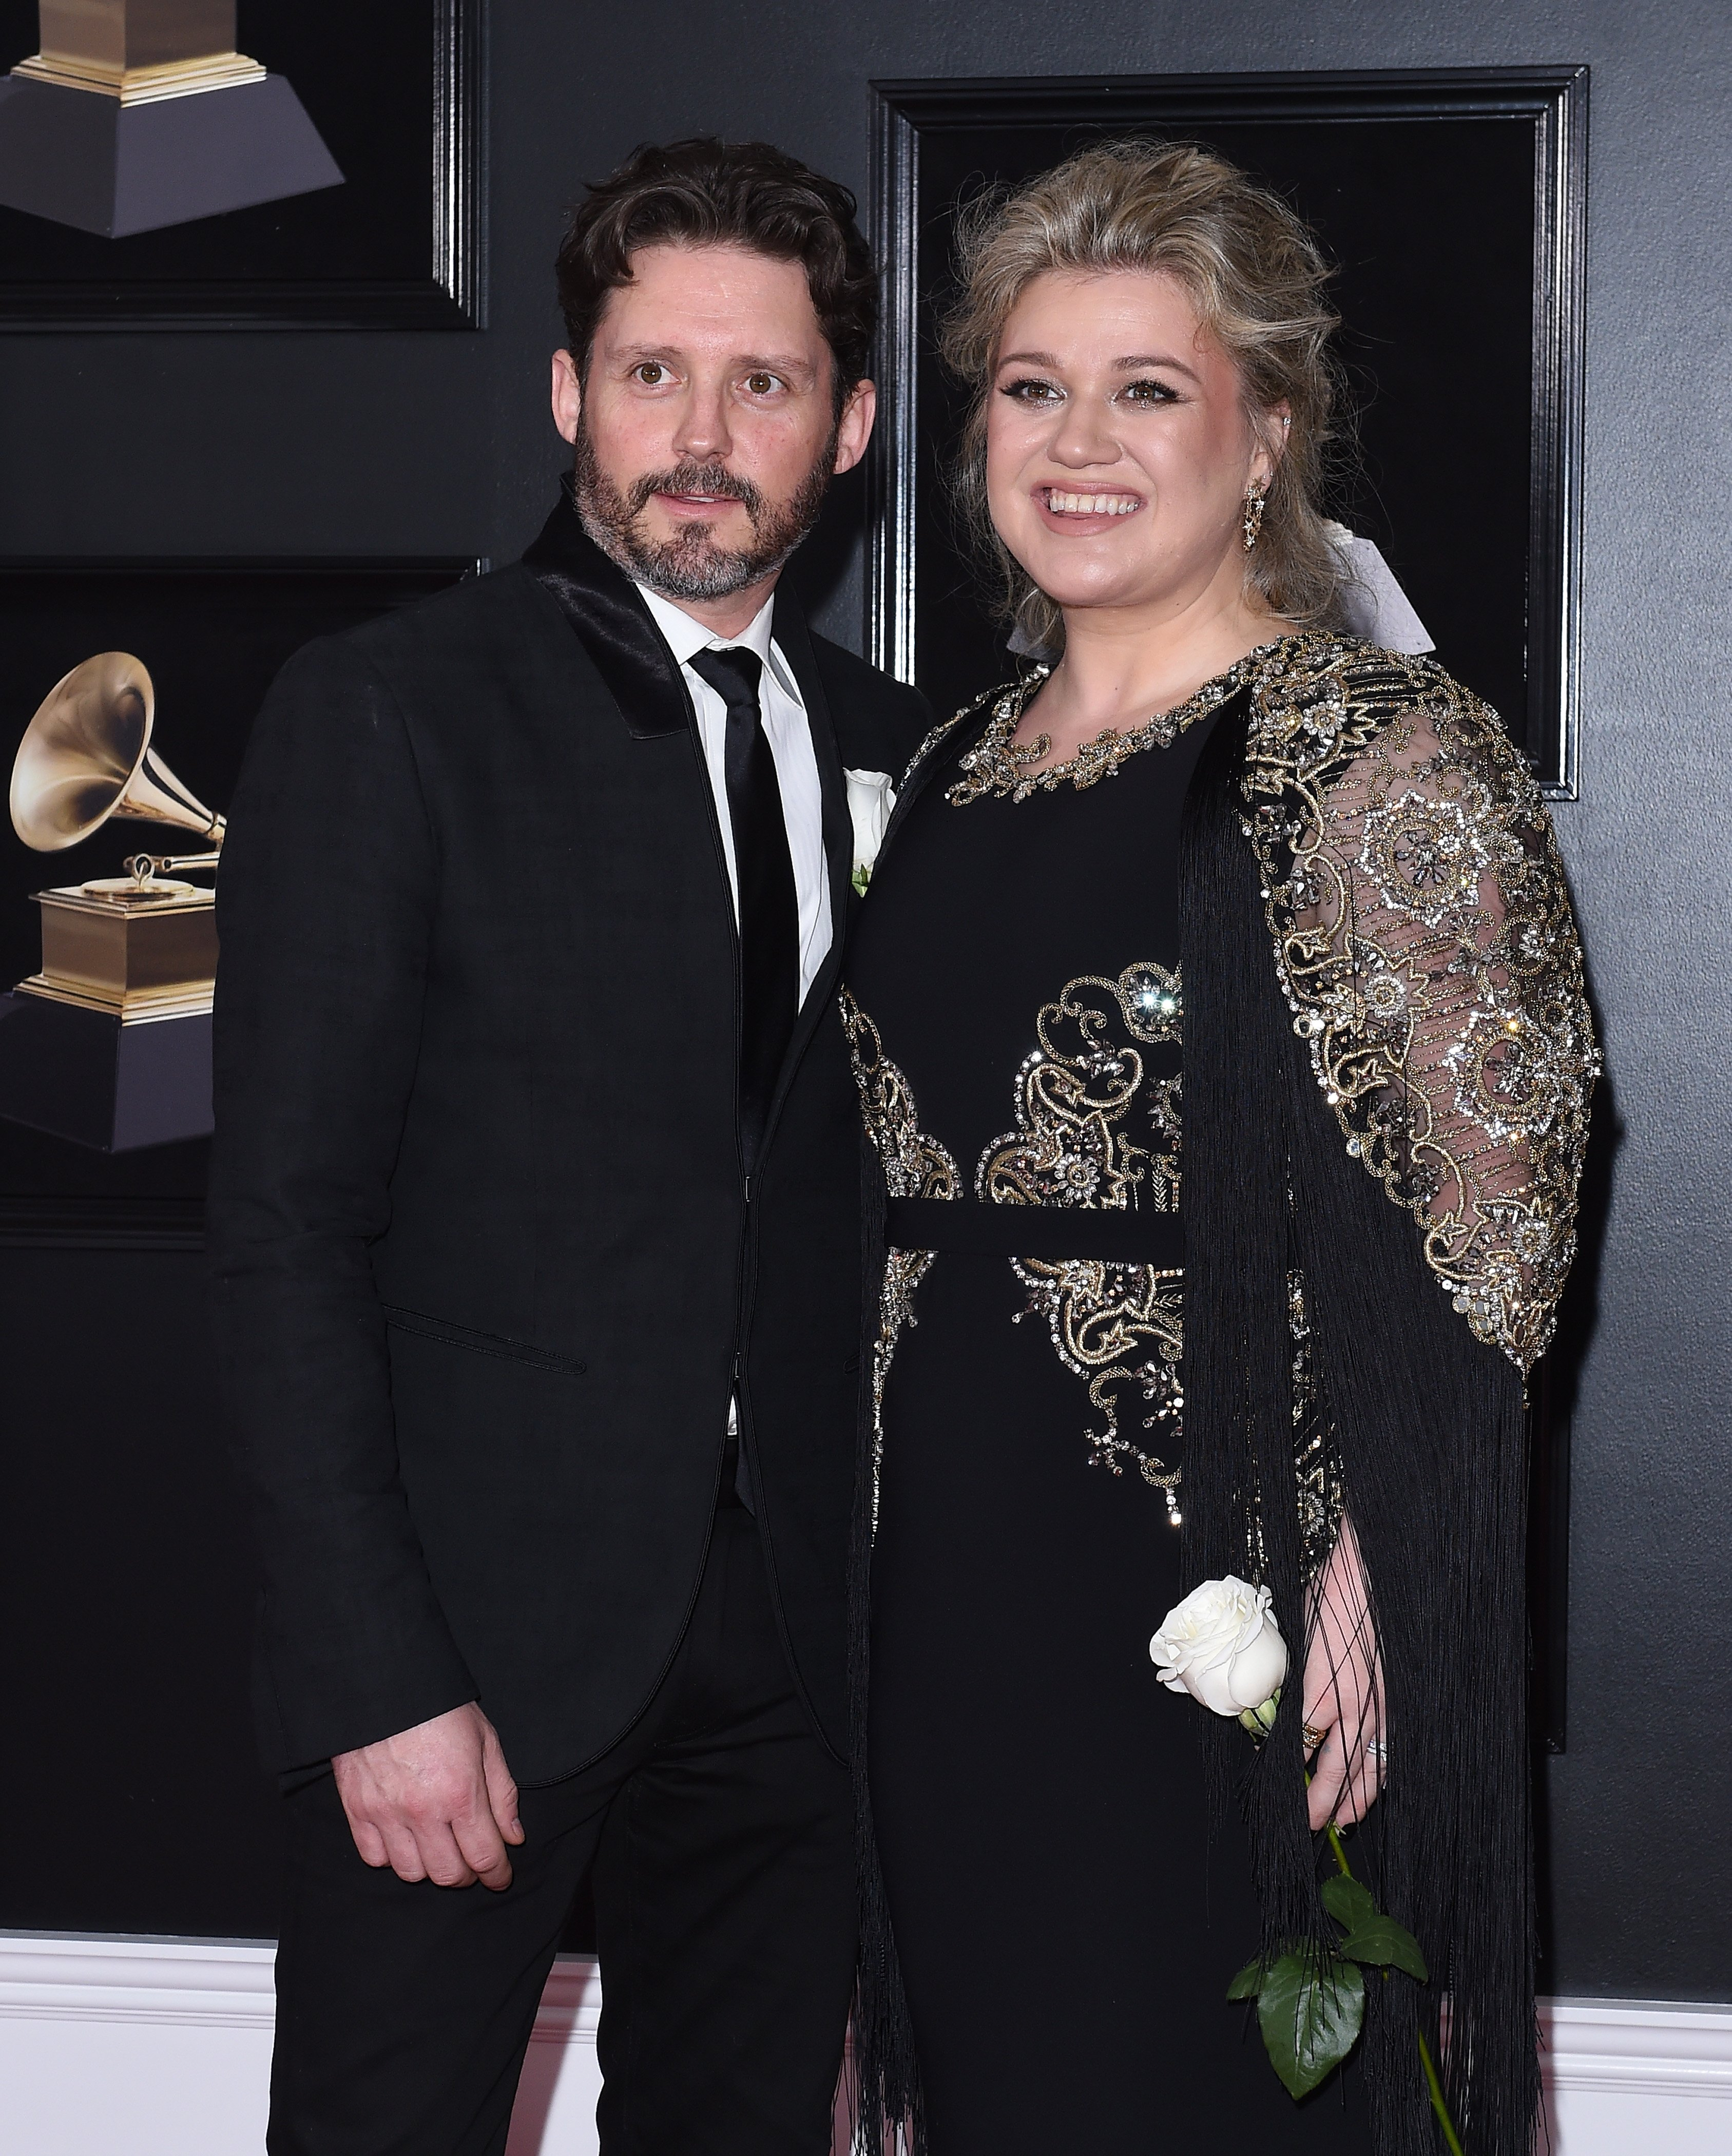 Images Source: Getty Images/Steve Granitz/Kelly Clarkson, Brandon Blackstock arrives at the 60th Annual GRAMMY Awards at Madison Square Garden on January 28, 2018 in New York City.